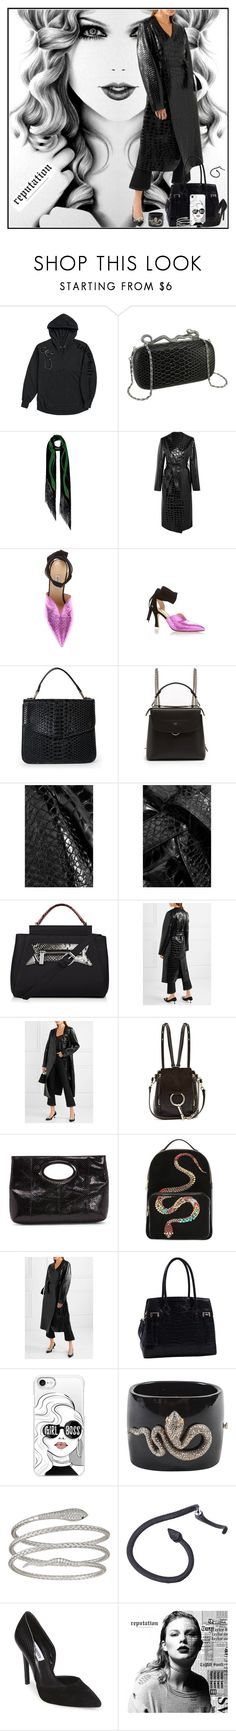 """""""Taylor Swift All Black"""" by yours-styling-best-friend ❤ liked on Polyvore featuring Attico, Urban Expressions, Fendi, Chloé, Donald J Pliner, Roberto Cavalli, MKF Collection, Casetify, Decadence and Steve Madden"""